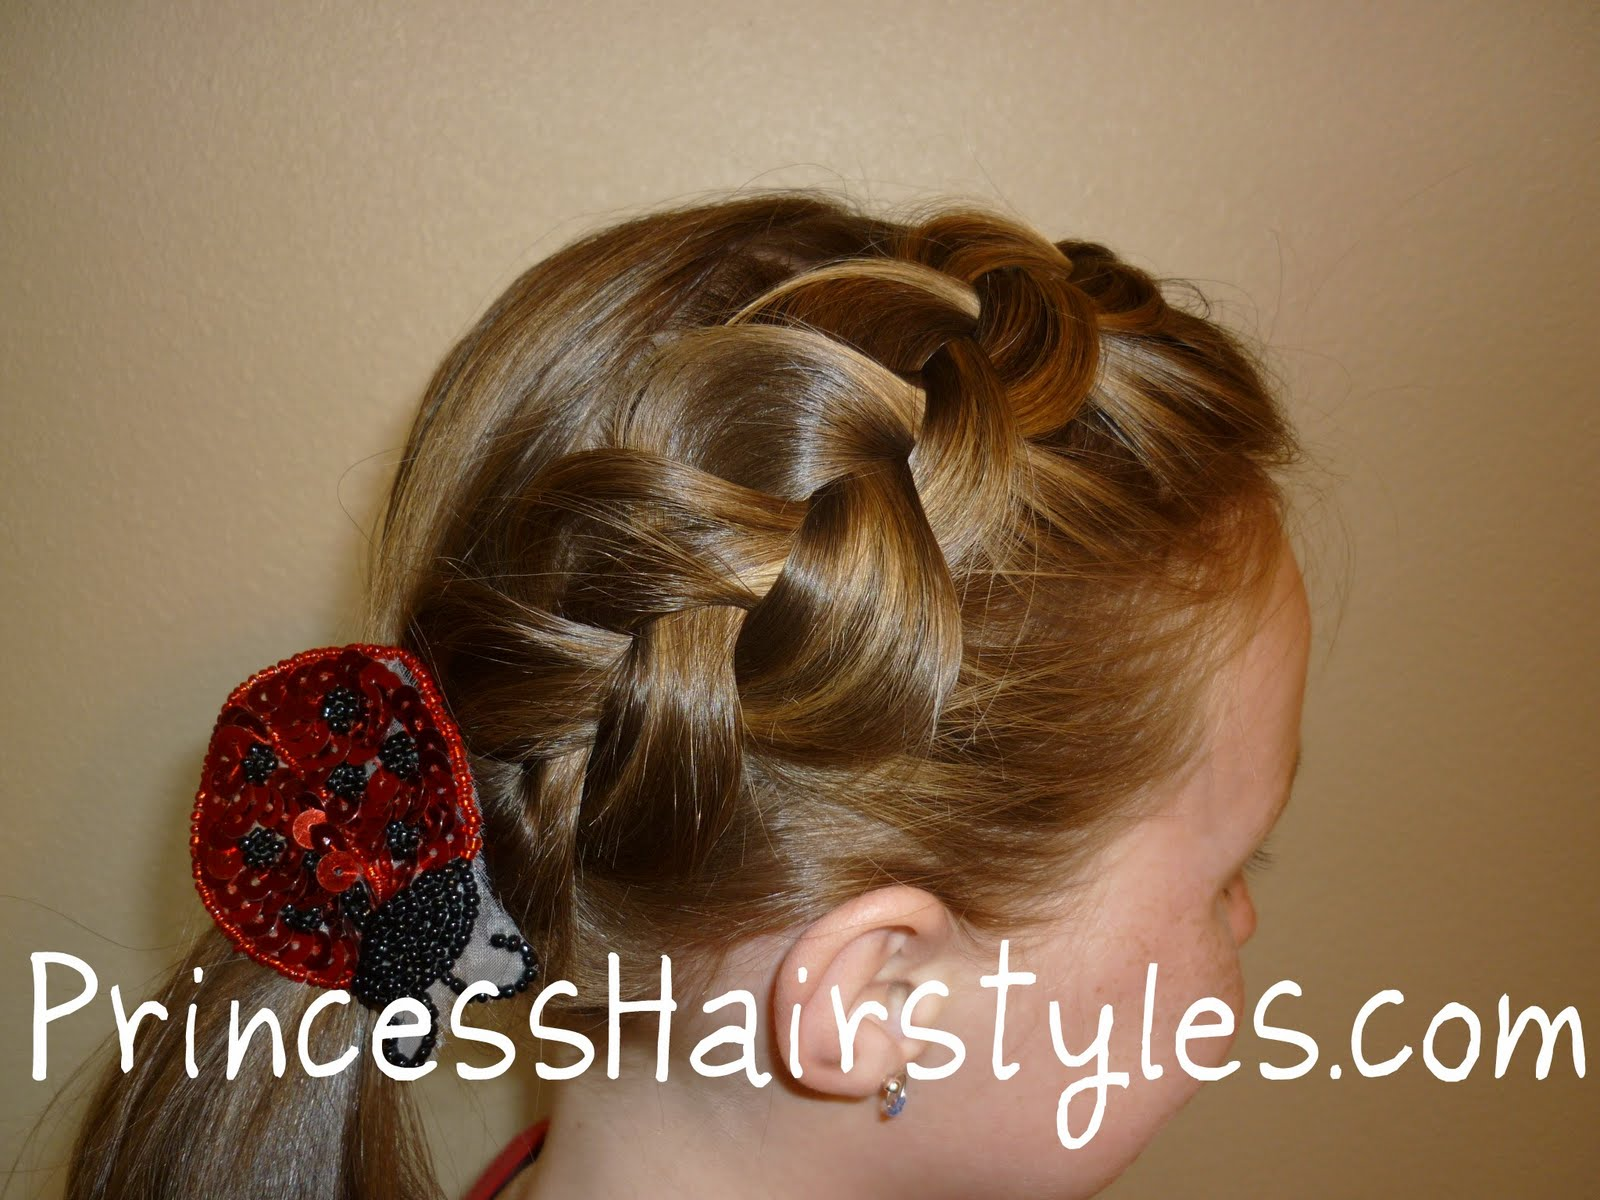 Love Cute Hairstyles? Feel Free To Snag And Share!